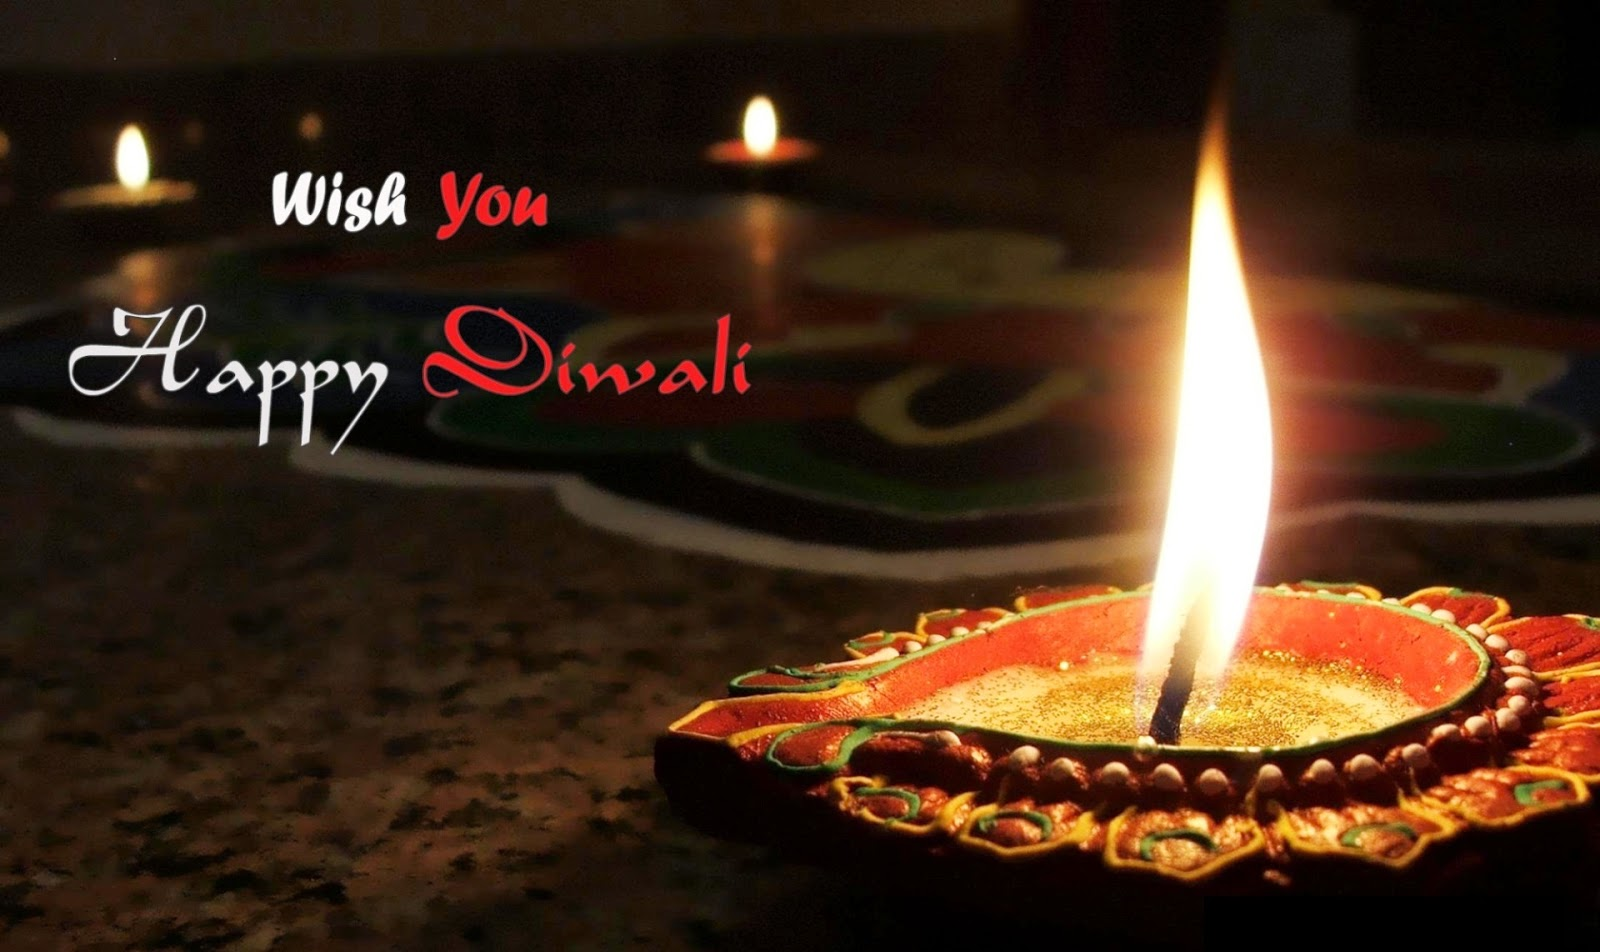 High Quality Diwali Wallpaper: Happy Diwali SMS, Wishes, Messages In Hindi, English And